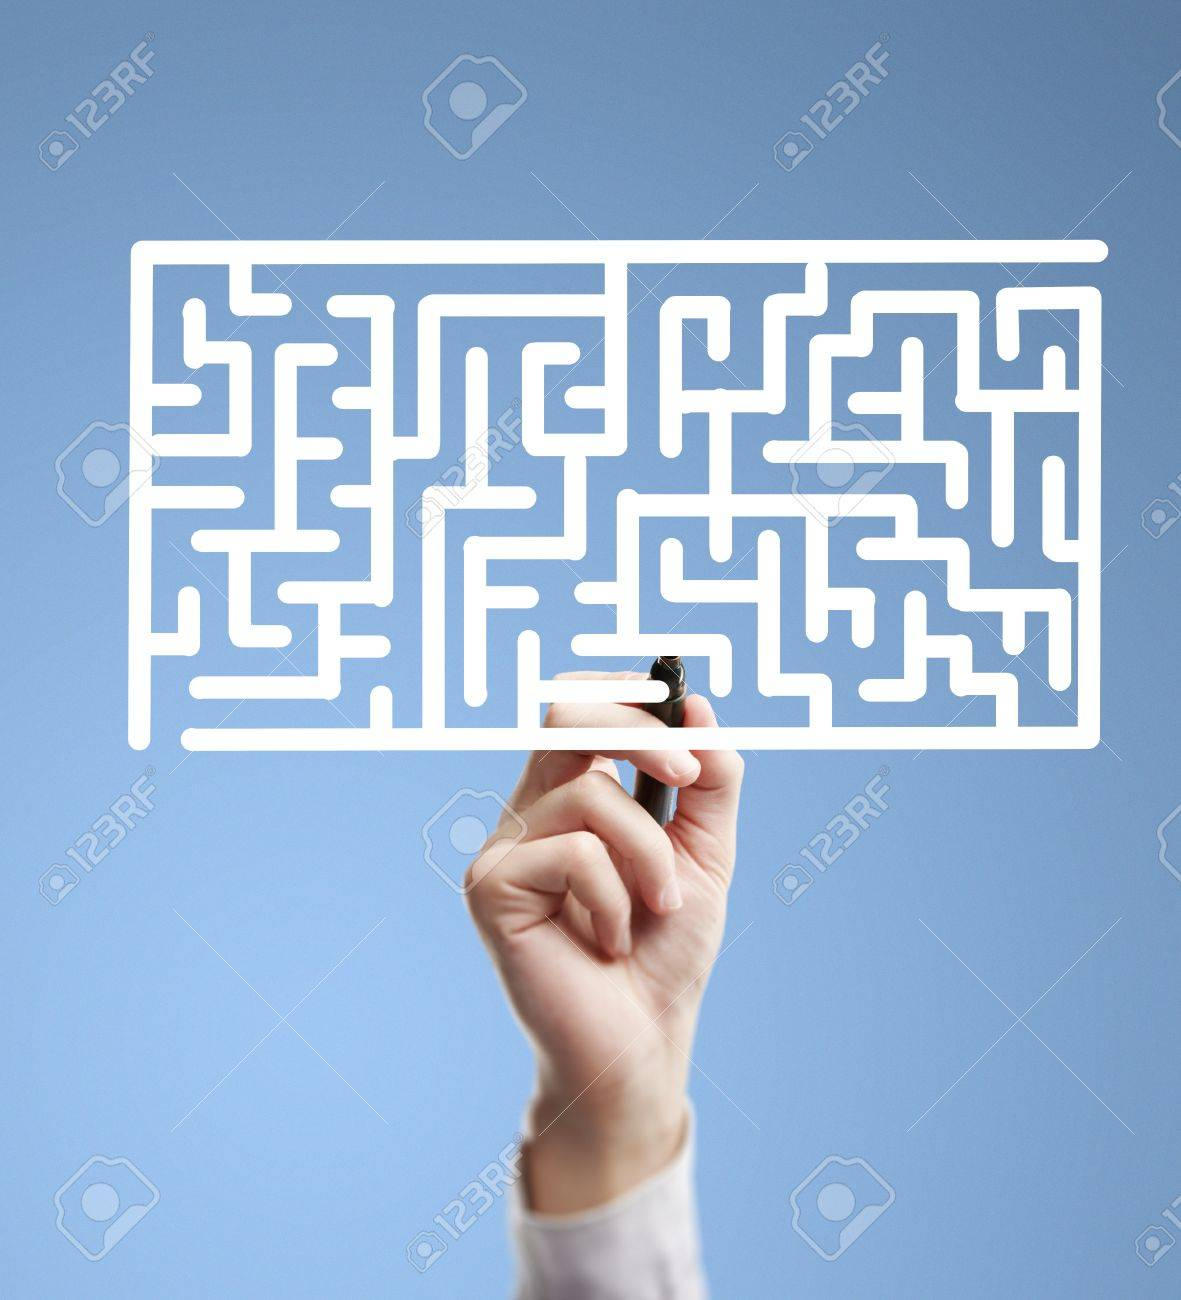 hand drawing labyrinth on a blue background Stock Photo - 15788255